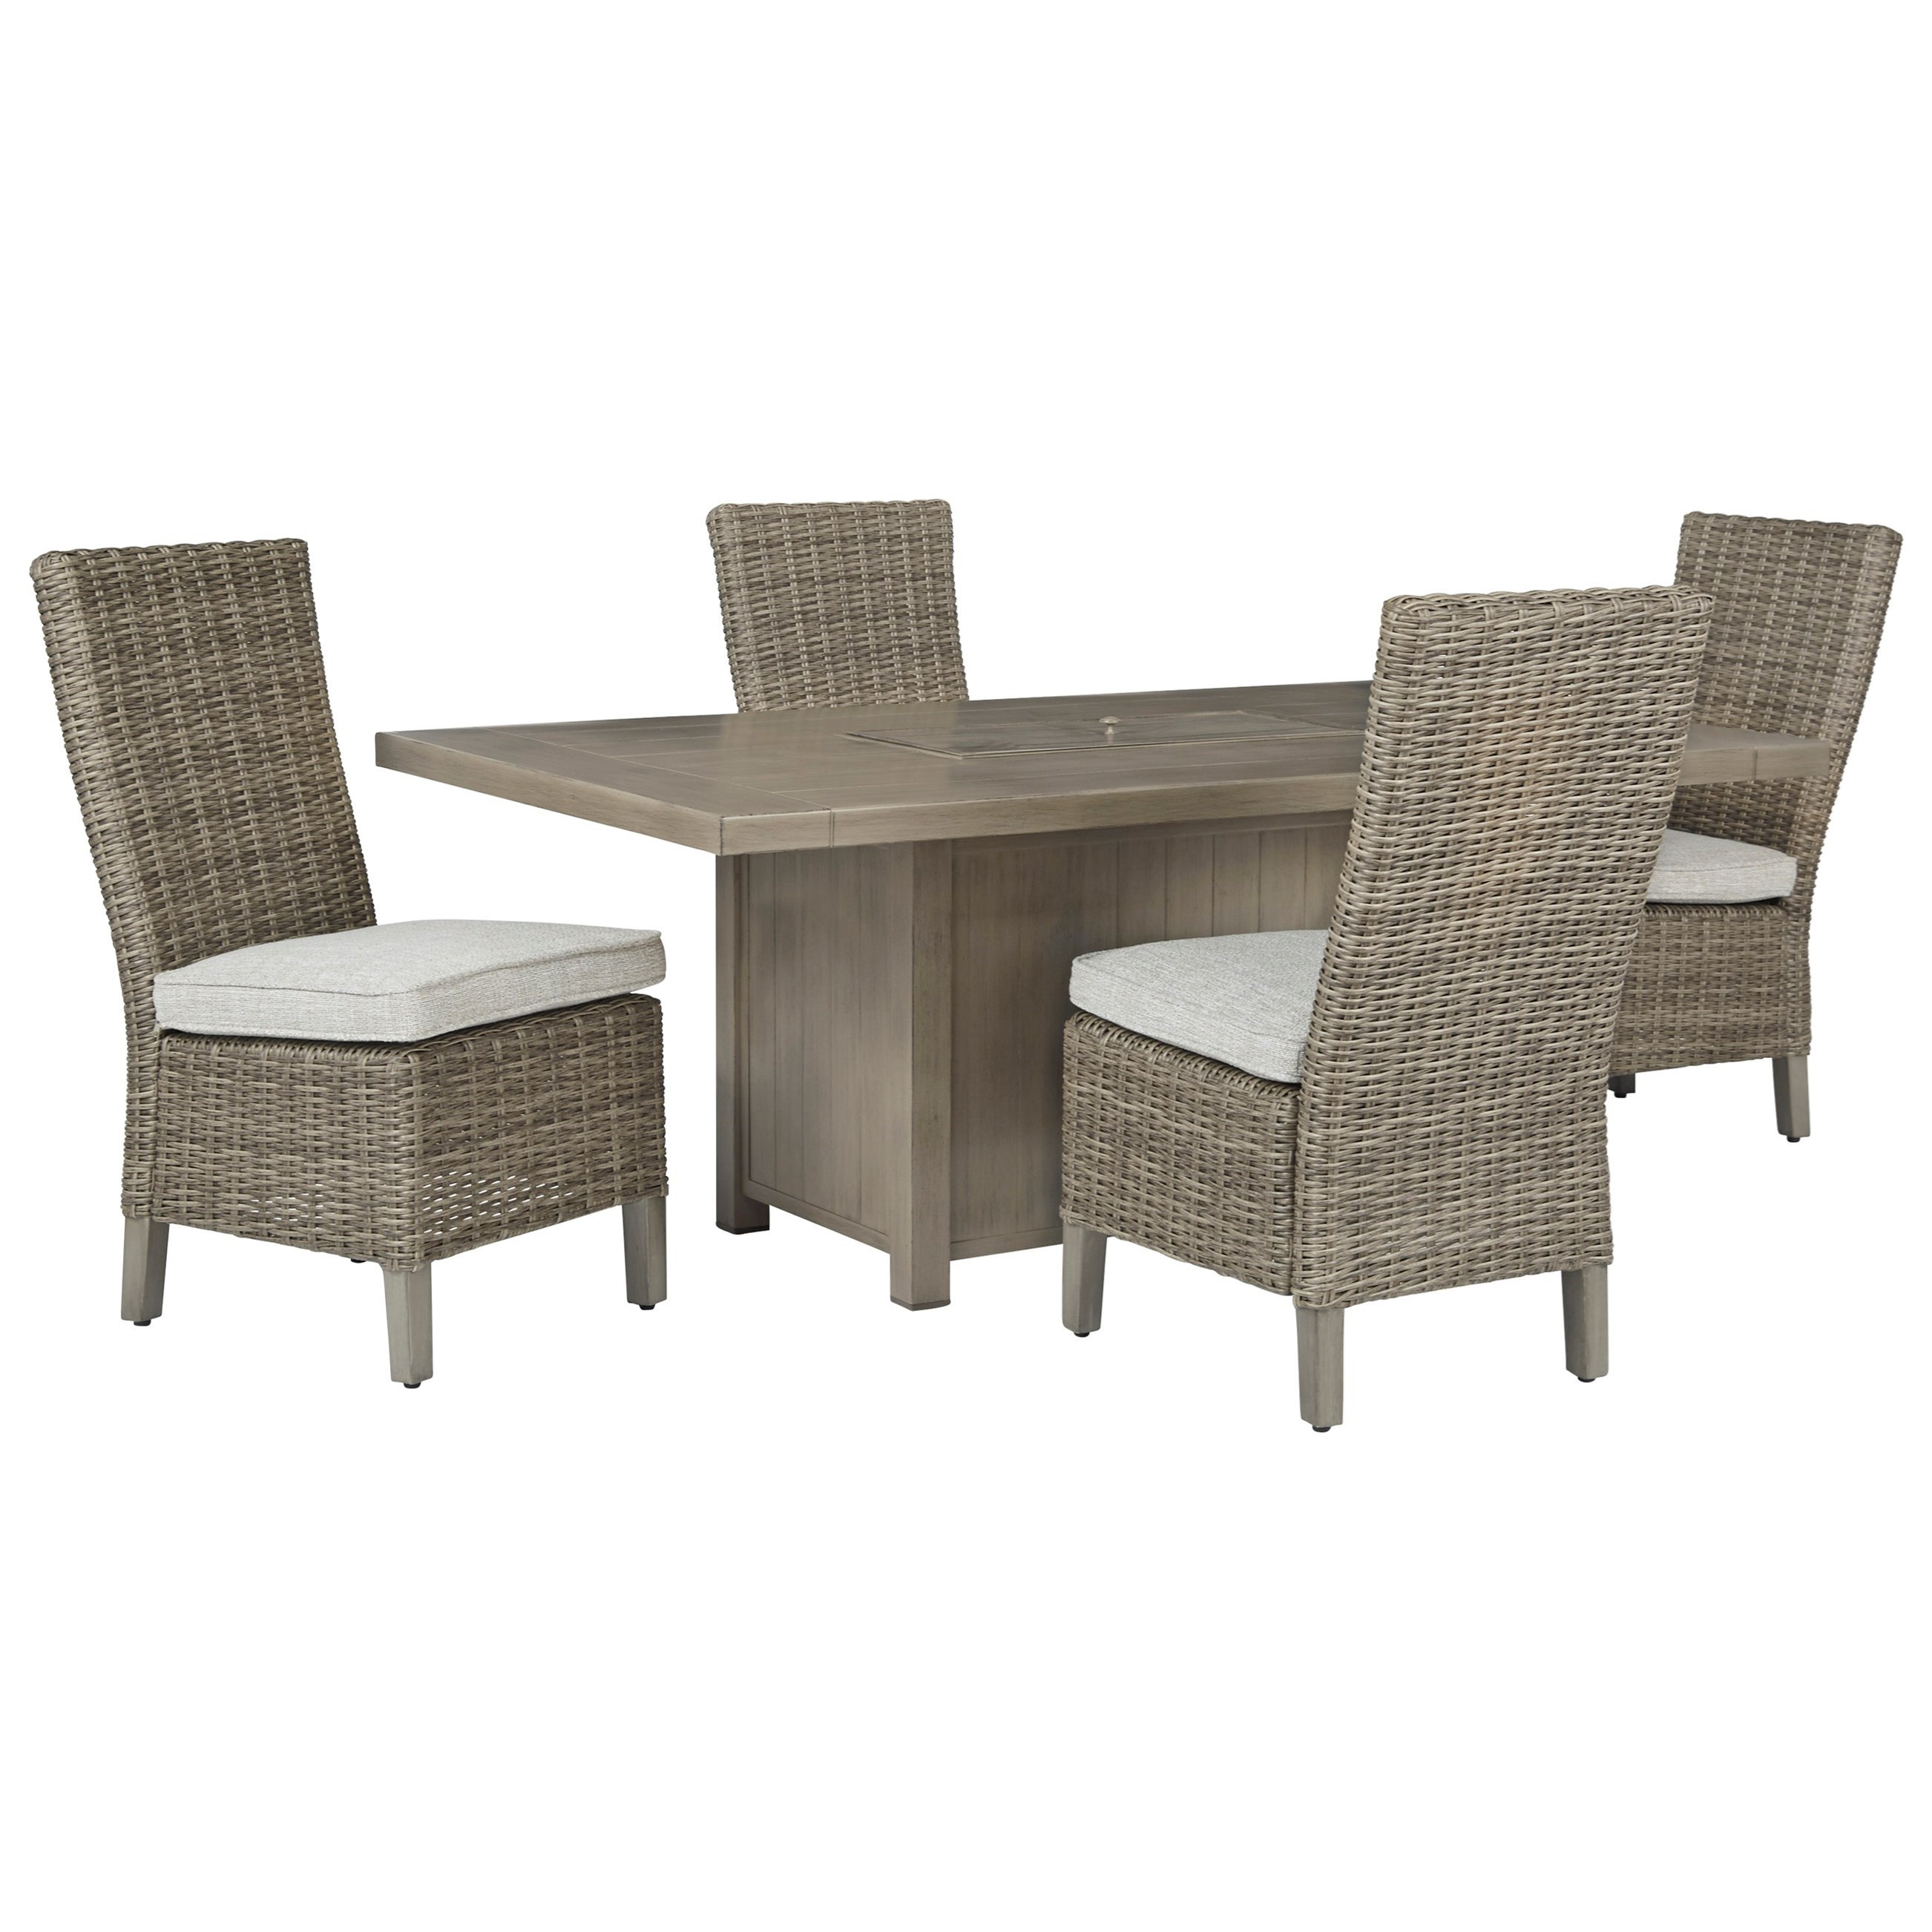 Windon Barn 5-Piece Rectangular Fire Pit Table Set by Signature at Walker's Furniture